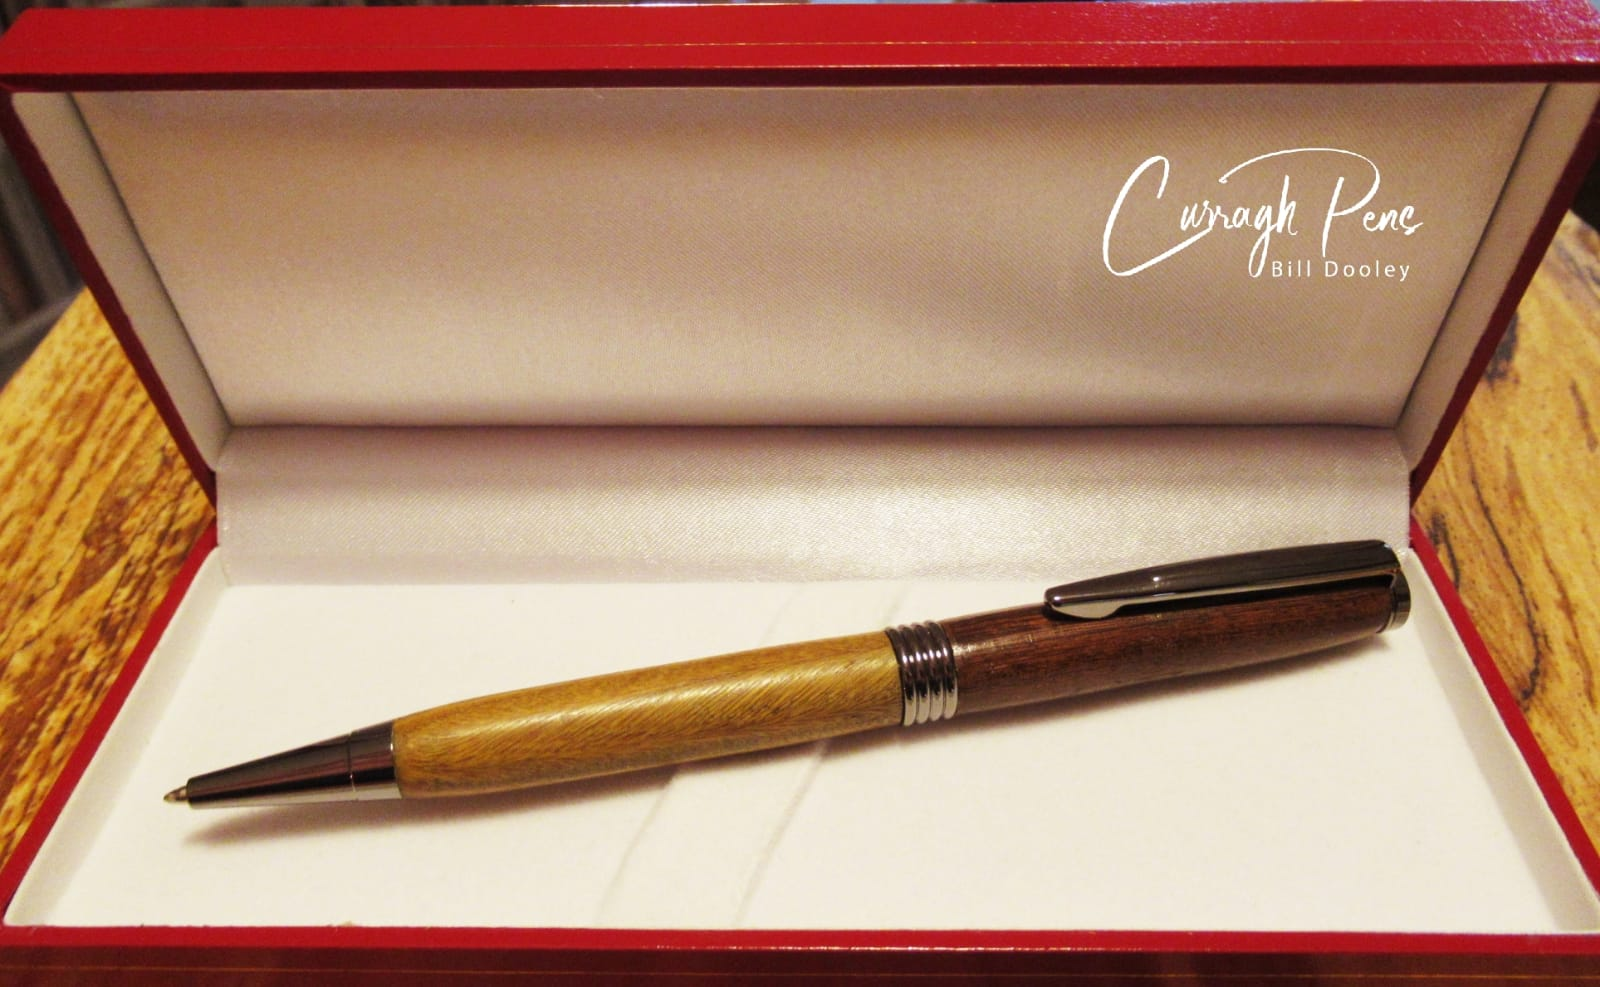 Streamline Pen Lignum